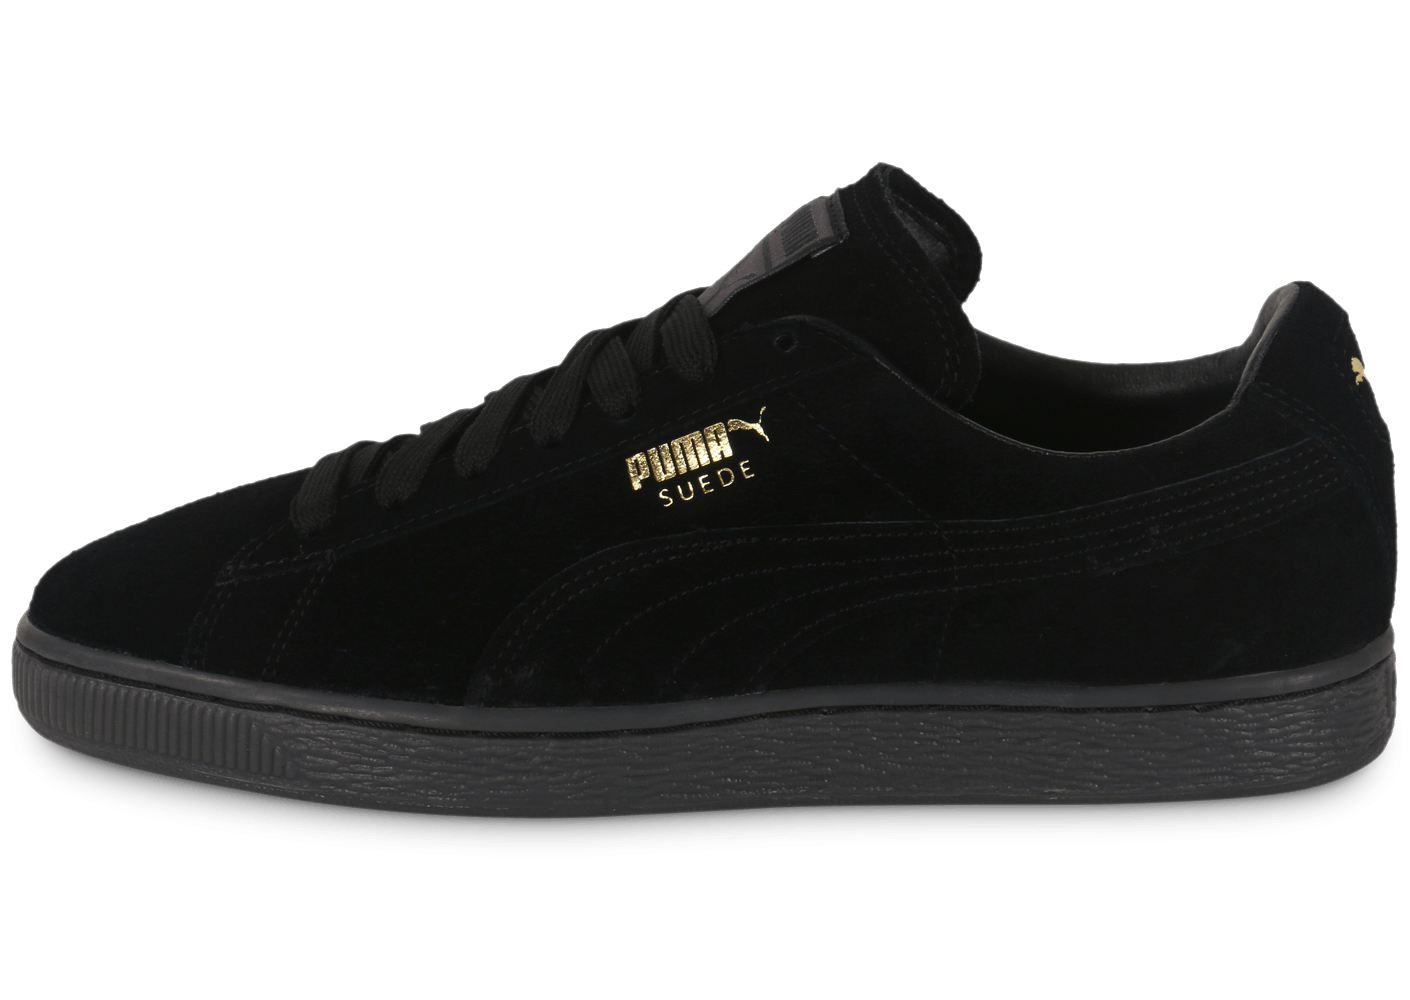 Puma Shoes Noir